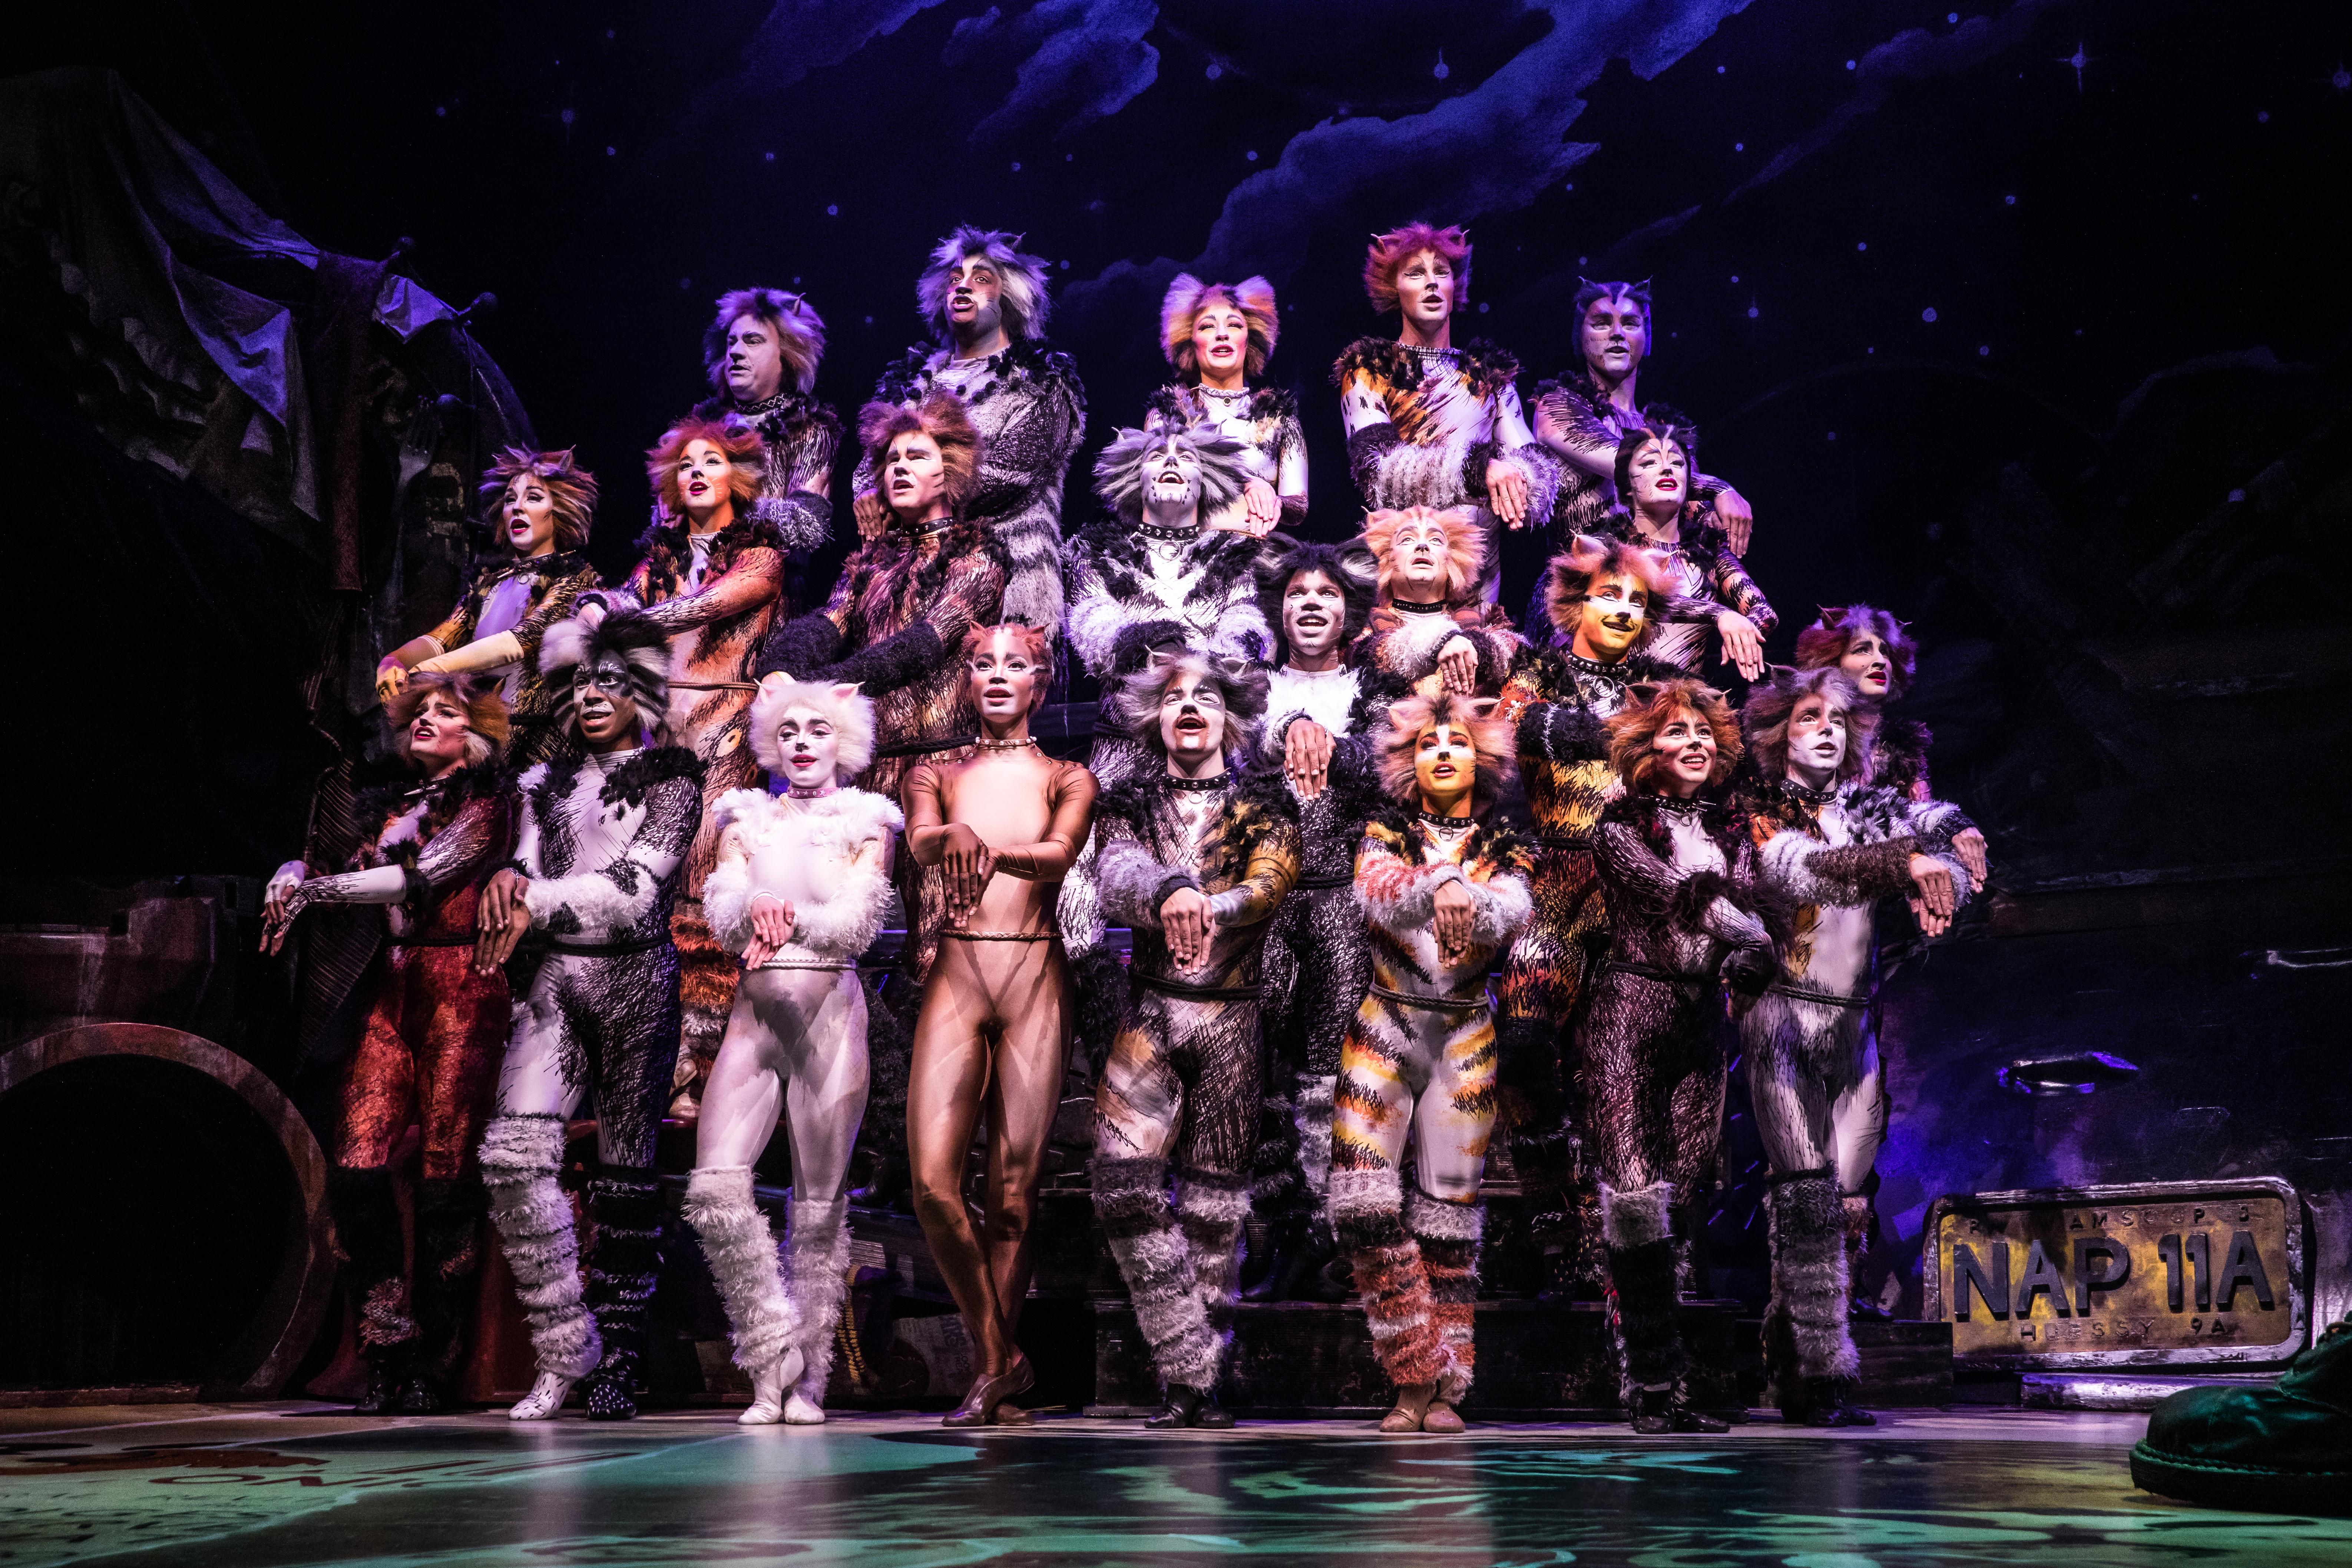 For eight performances only, the first ever Broadway revival of CATS is coming to the Paramount! The original Broadway production opened in 1982 at Broadway's Winter Garden Theater, where it ran for 7,485 performances and 18 years. Since its world premiere, CATS has been presented in more than 30 countries, has been translated into 15 languages, and has been seen by more than 73 million people worldwide. Starting from{&amp;nbsp;}Tuesday, March 26 to Sunday, March 31, CATS is gracing Seattle with their presence and<a  href=&quot;https://seattle.broadway.com/shows/cats-baa/&quot; target=&quot;_blank&quot; title=&quot;https://seattle.broadway.com/shows/cats-baa/&quot;>{&amp;nbsp;}you can grab your tickets, starting at $40</a>. (Image courtesy of Broadway at the Paramount).